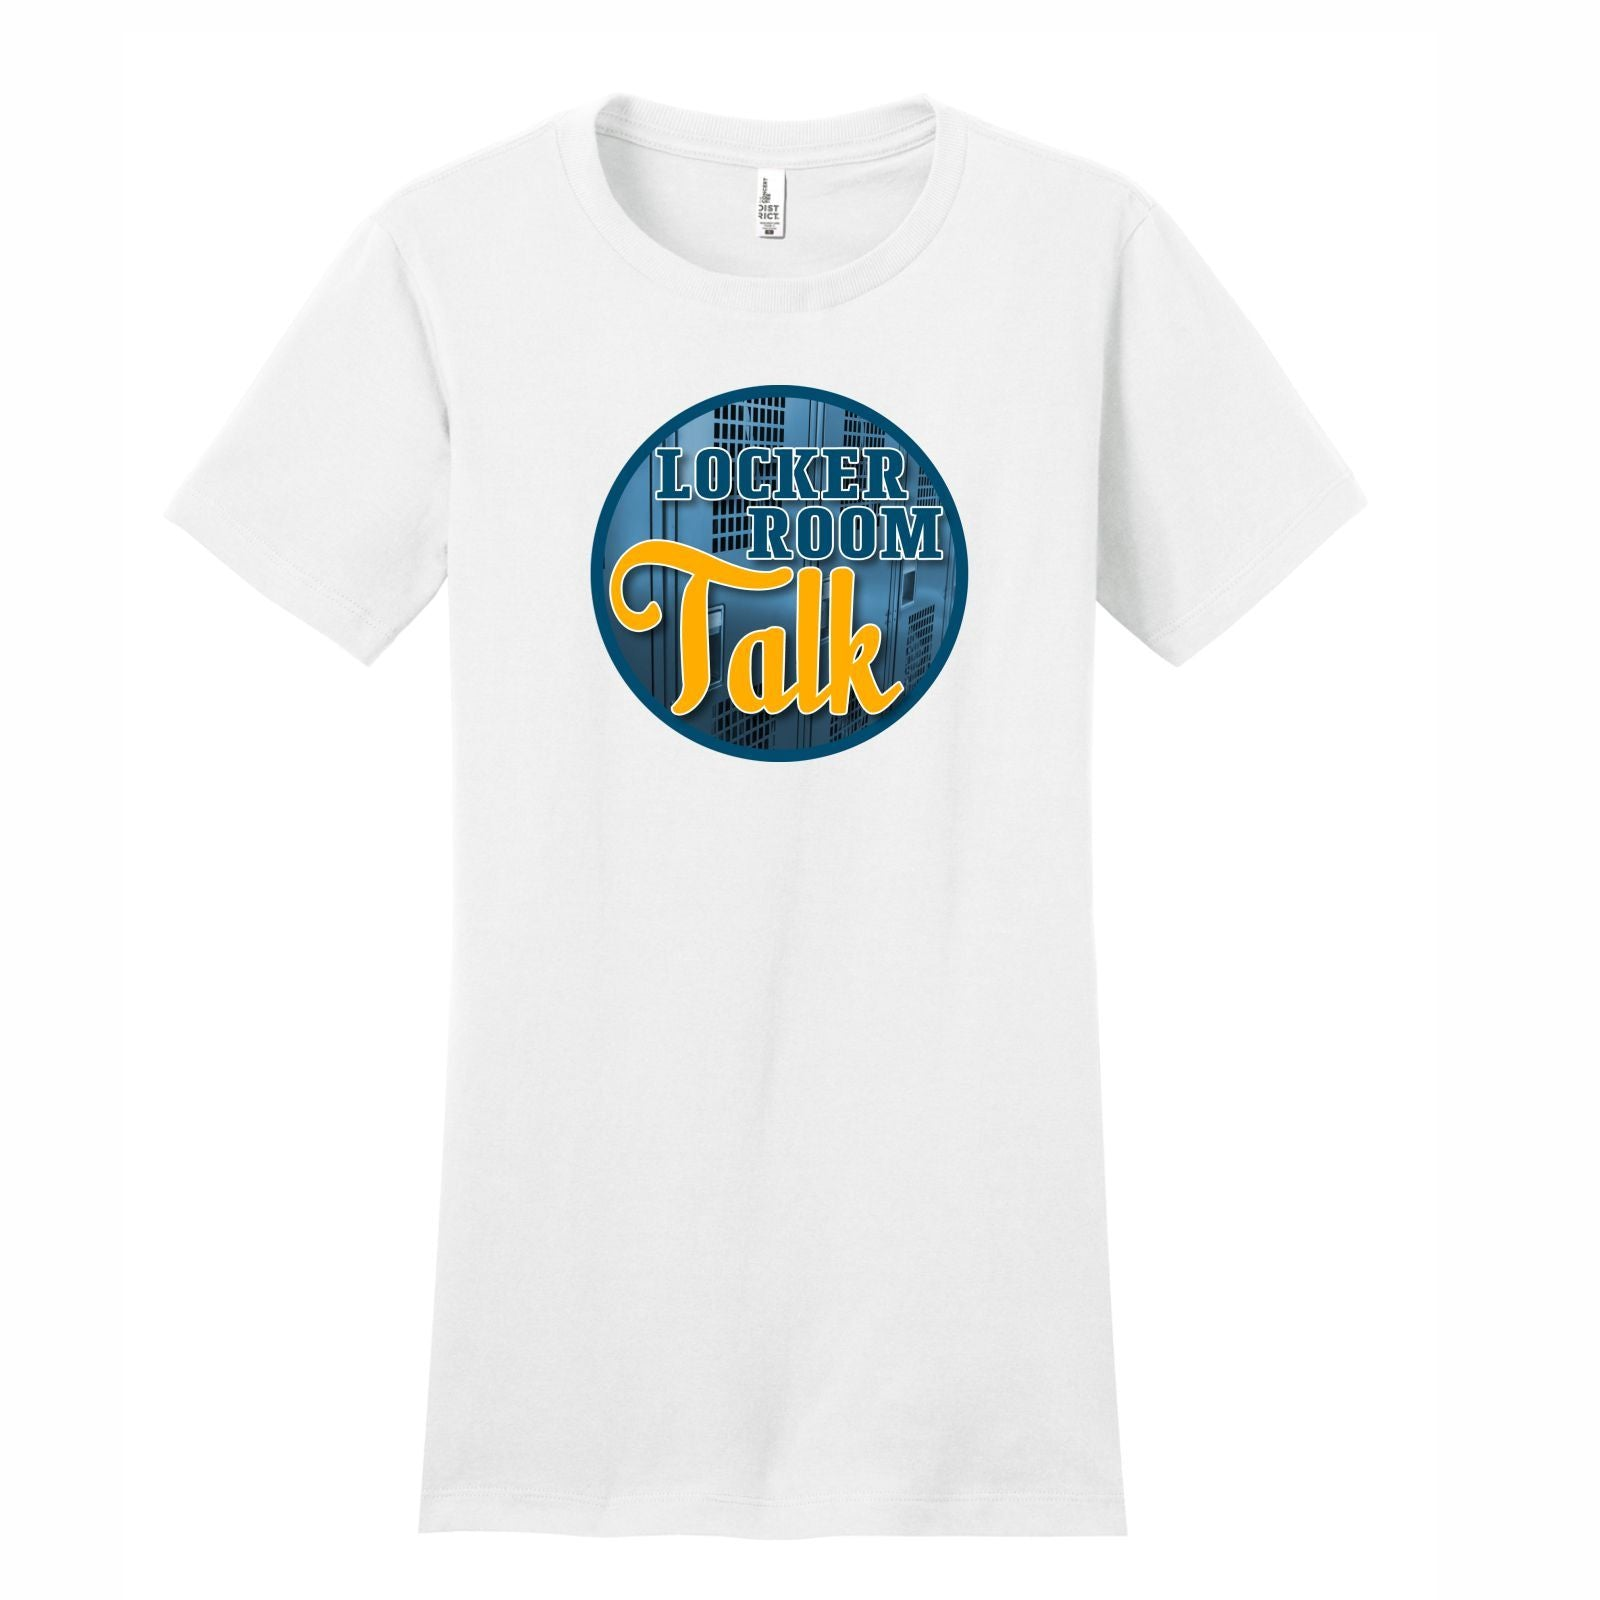 Locker Room Talk - Women's Short Sleeve Tee What